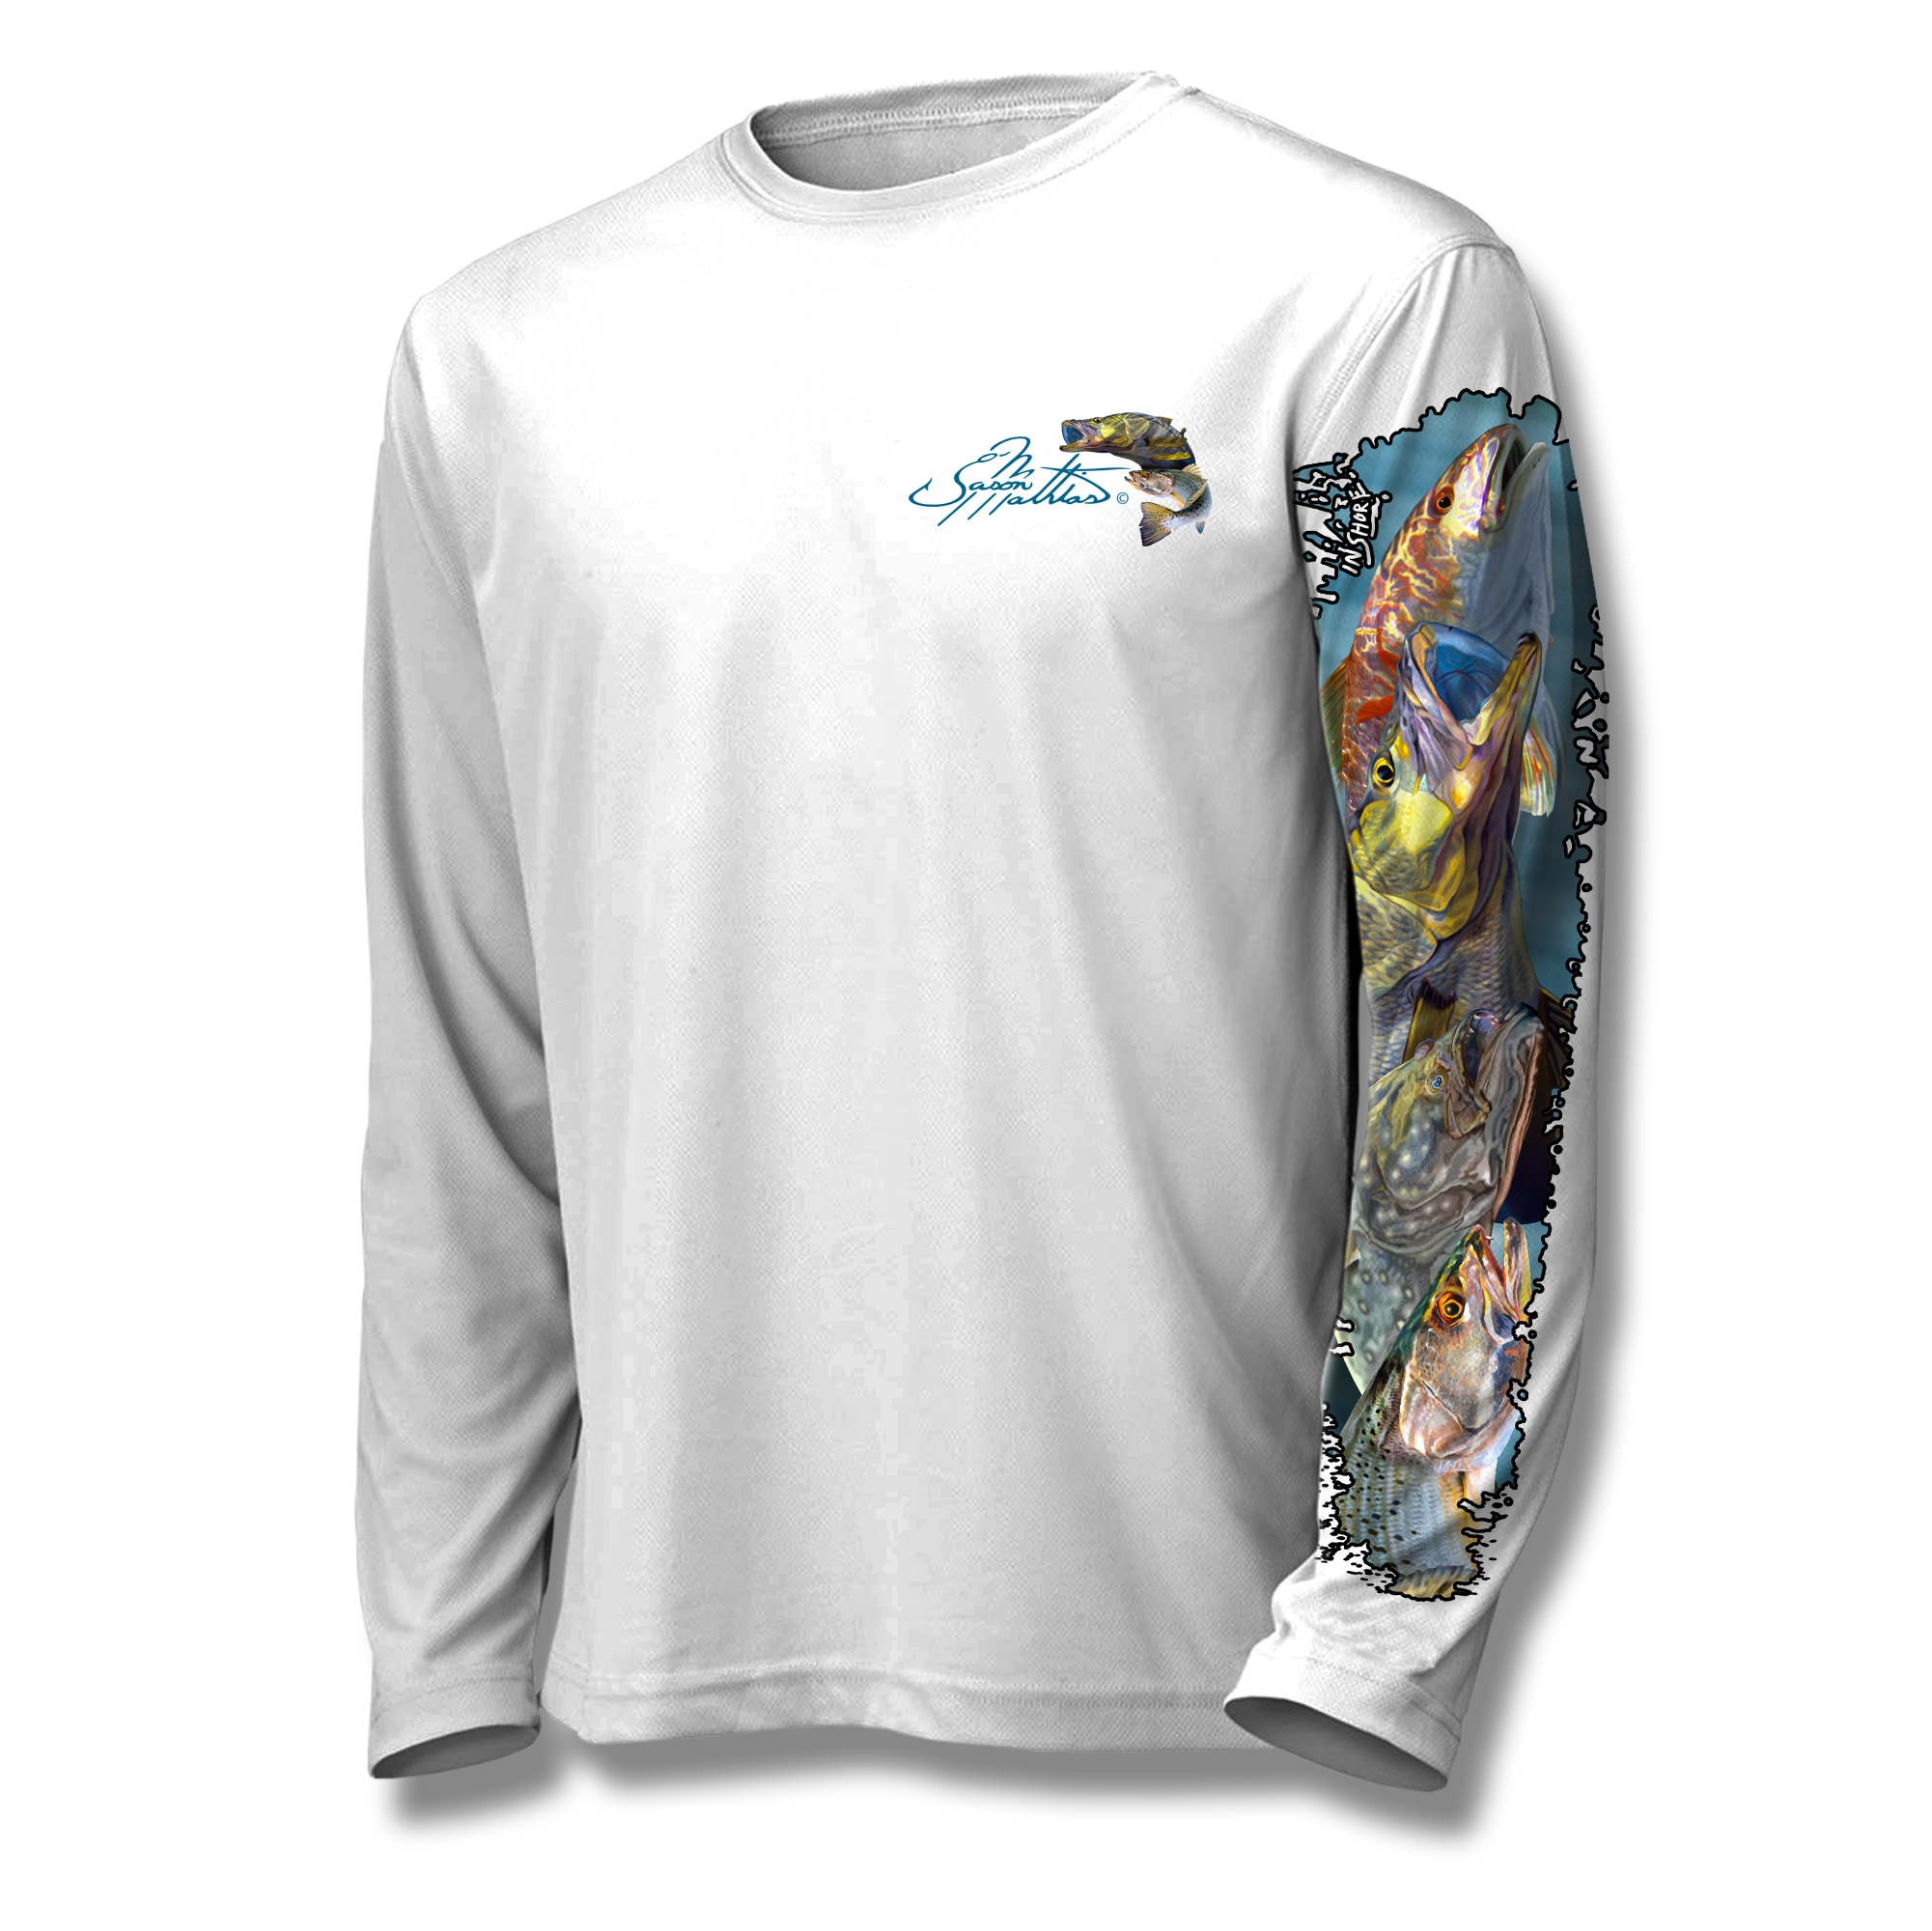 southeast-inshore-slam-jason-mathais-art-shirt-white-front.png